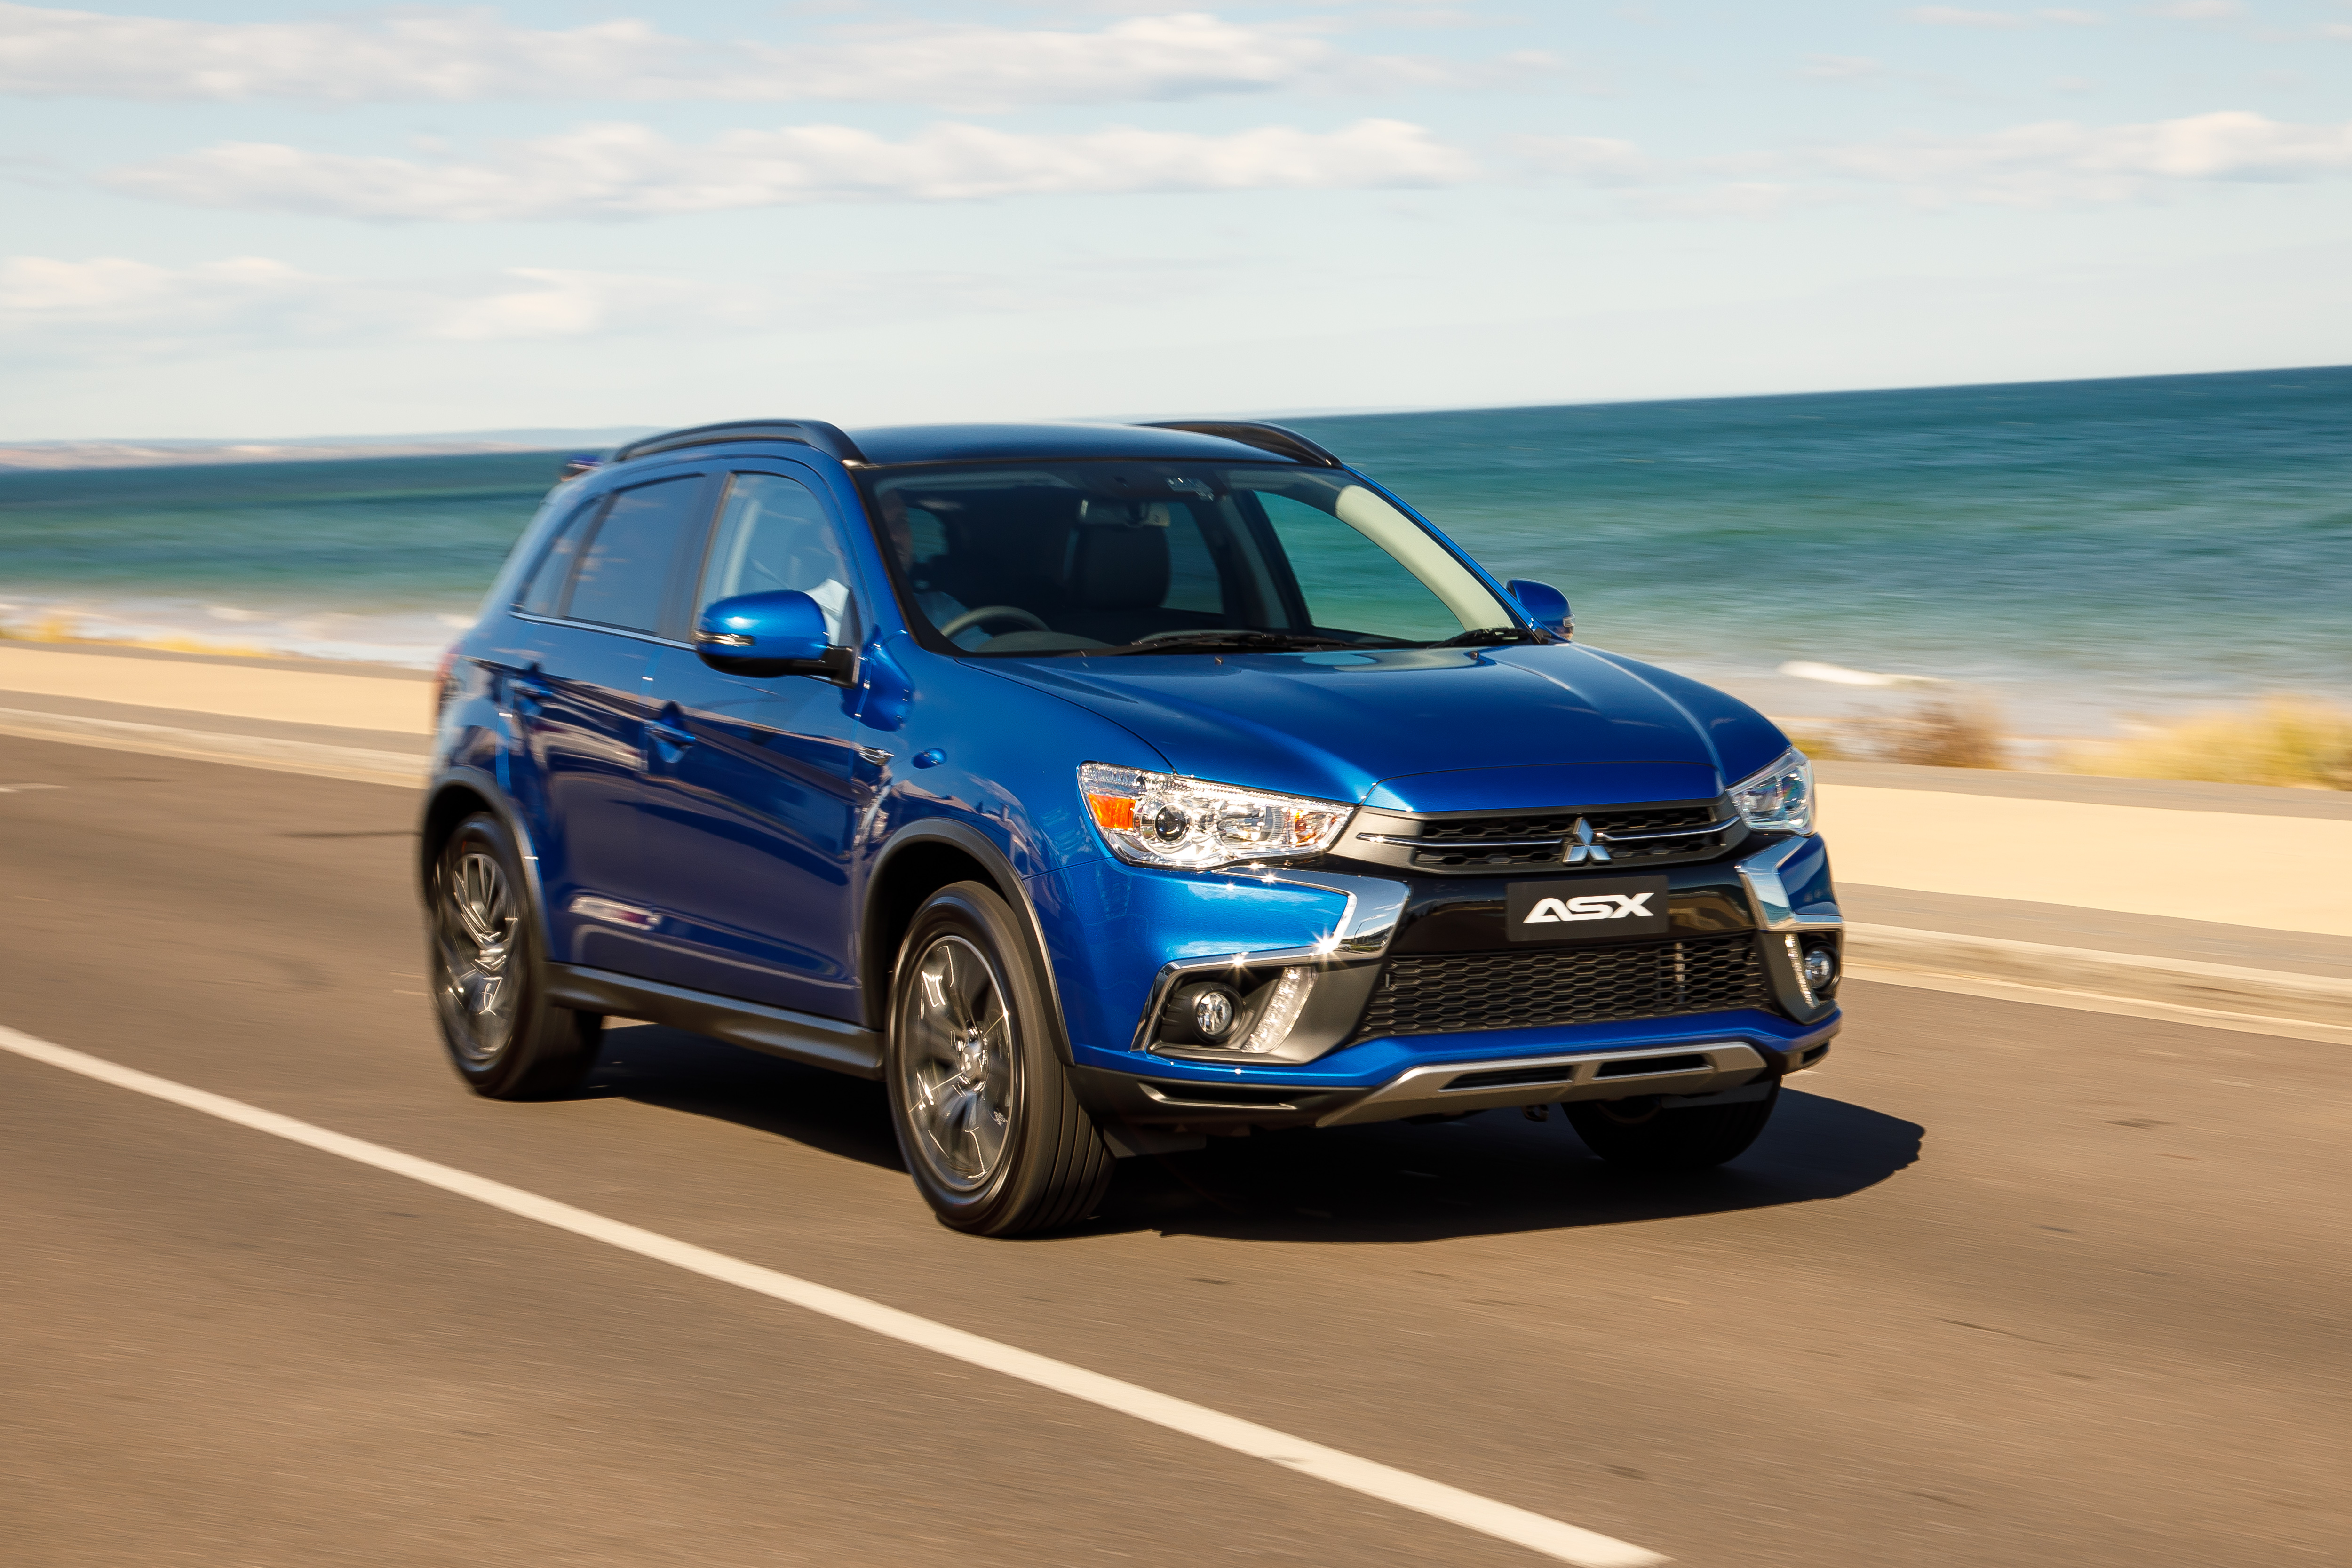 driven mitsubishi updates asx compact suv range goauto. Black Bedroom Furniture Sets. Home Design Ideas